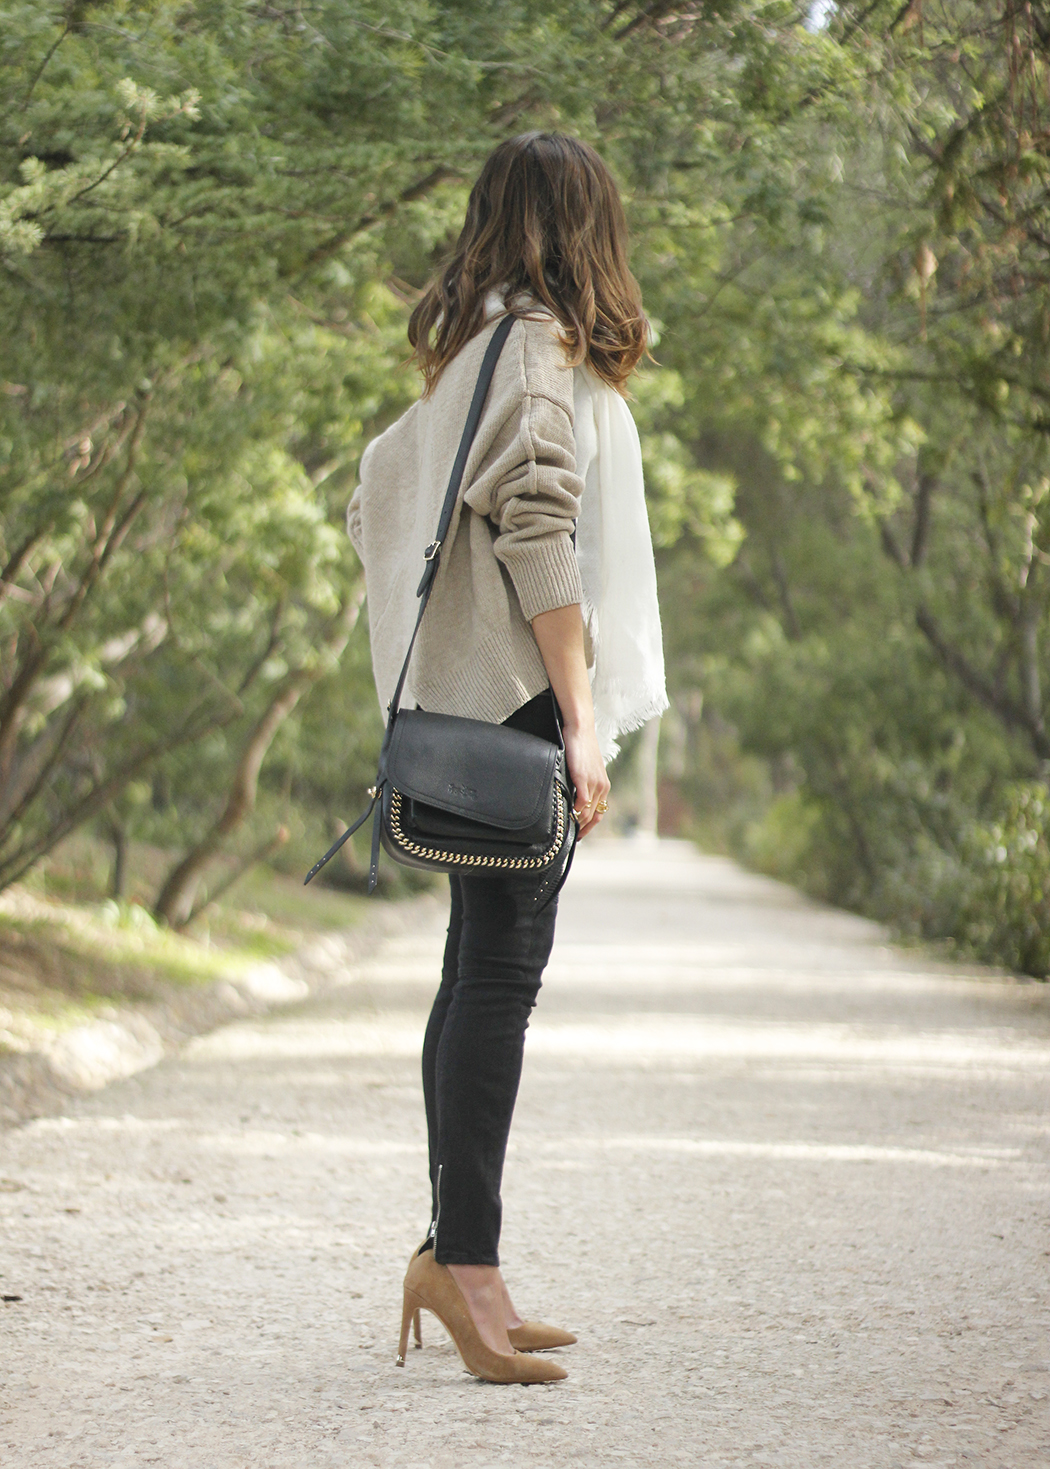 Beige Sweater Black Jeans Nude Heels White Scarf Coach Bag Outfit Style06